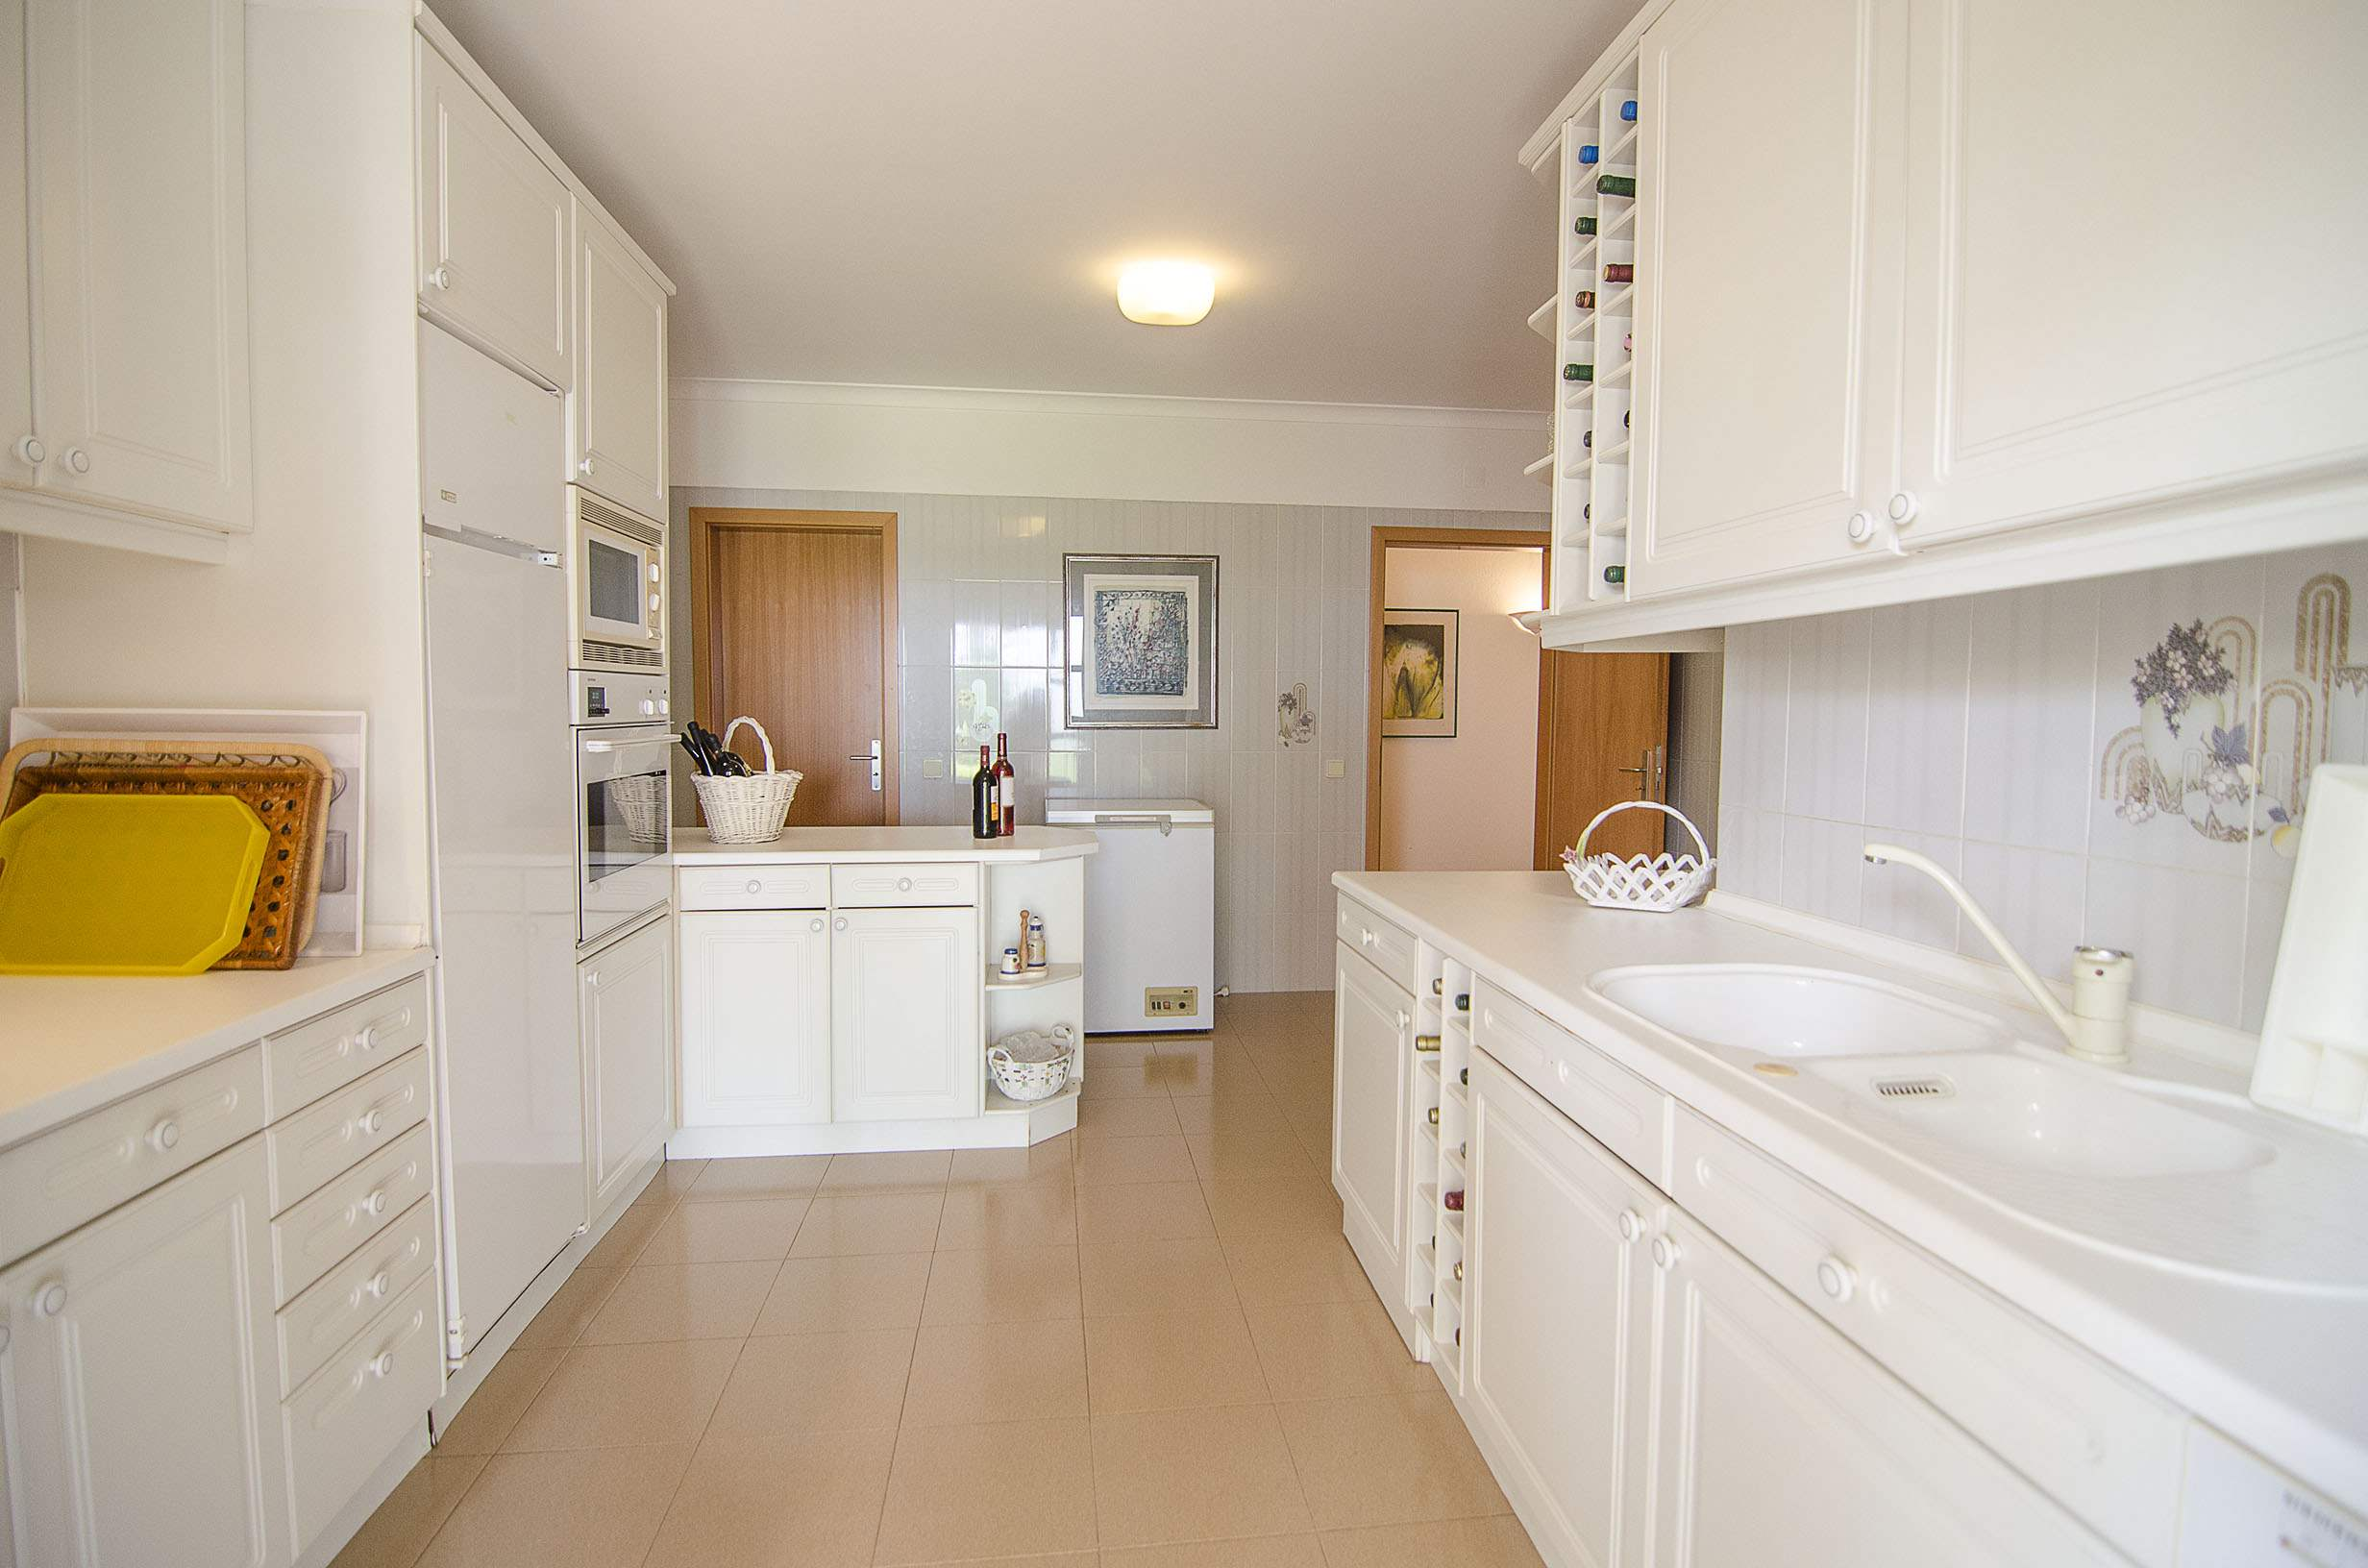 Villa Clara, 4 bedroom villa in Vilamoura Area, Algarve Photo #8